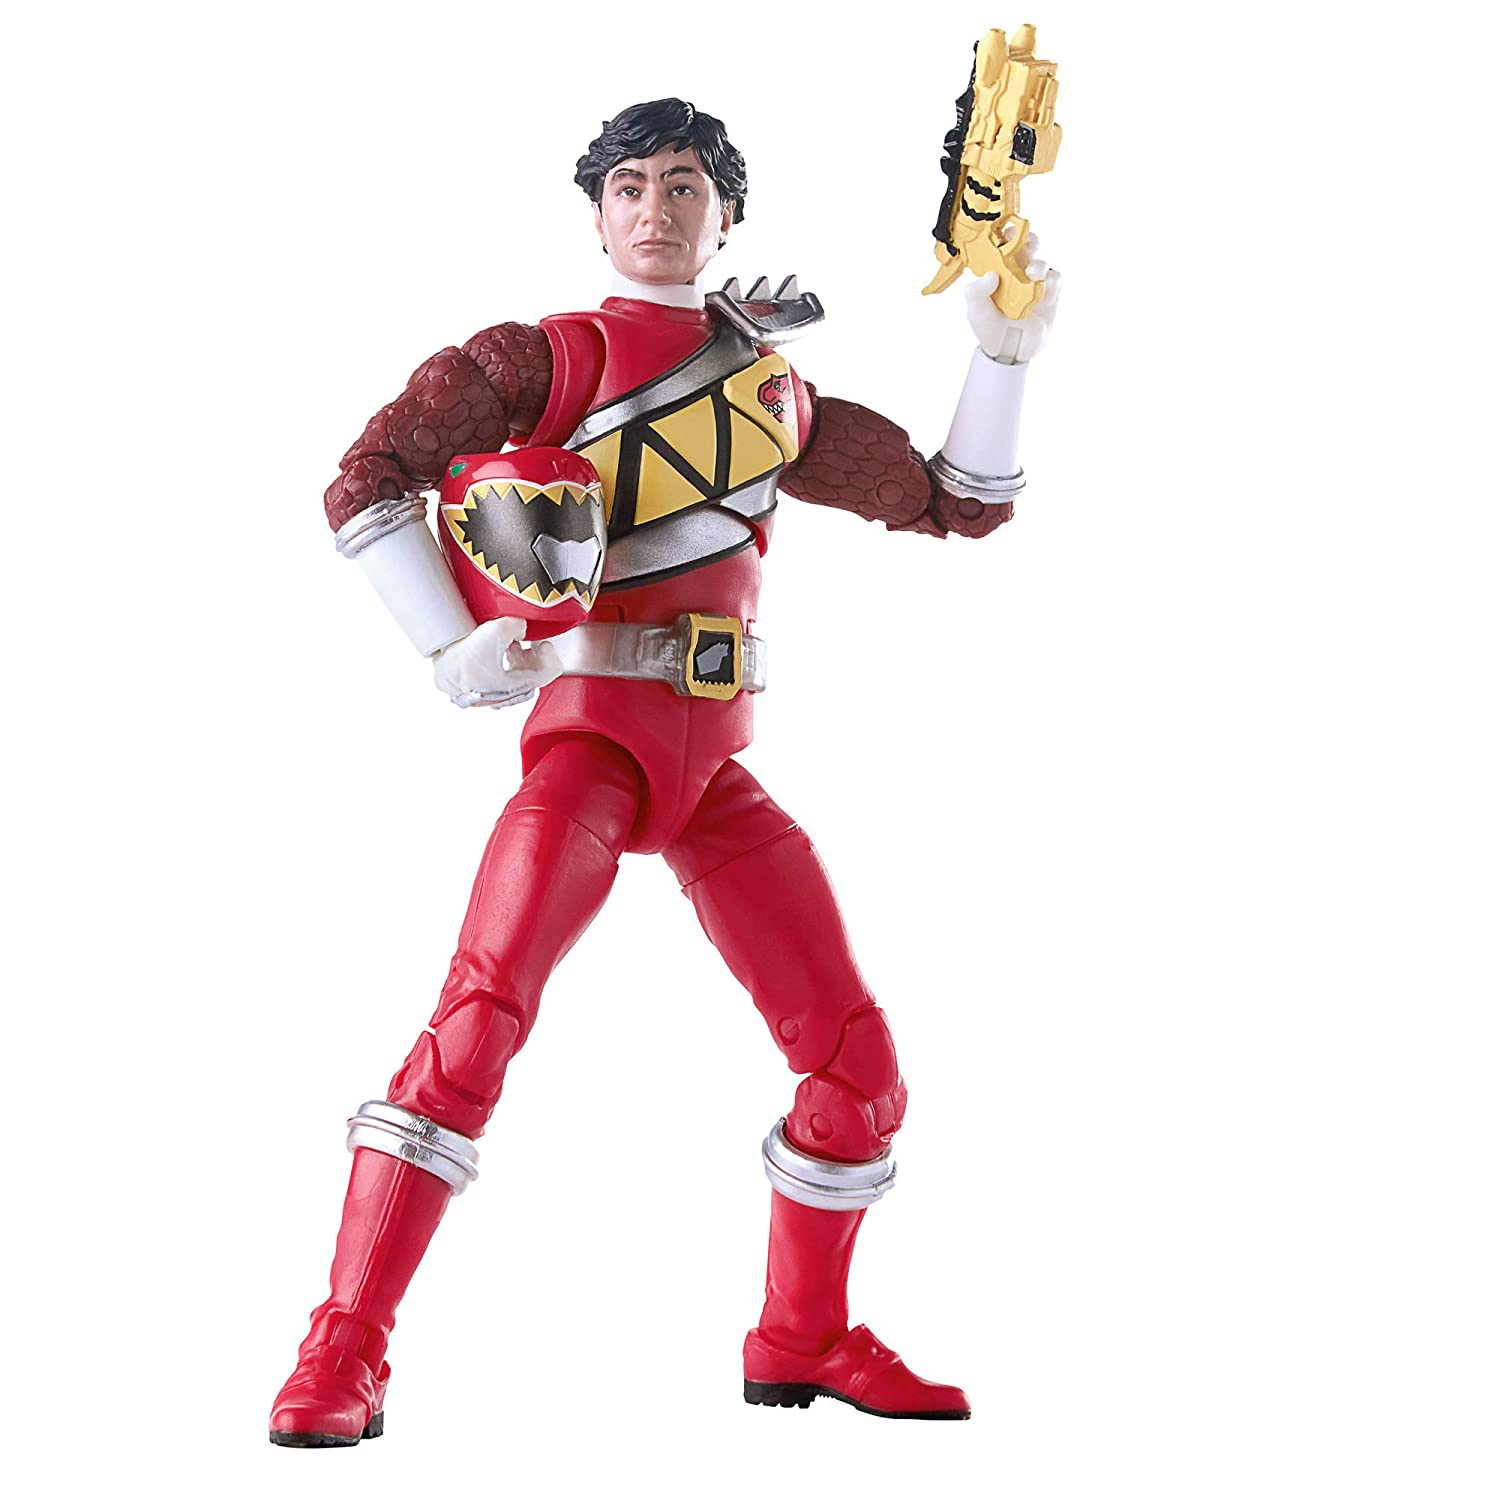 Hasbro Power Rangers Lightning Collection 6-Inch Dino Charge Red Ranger Collectible Action Figure